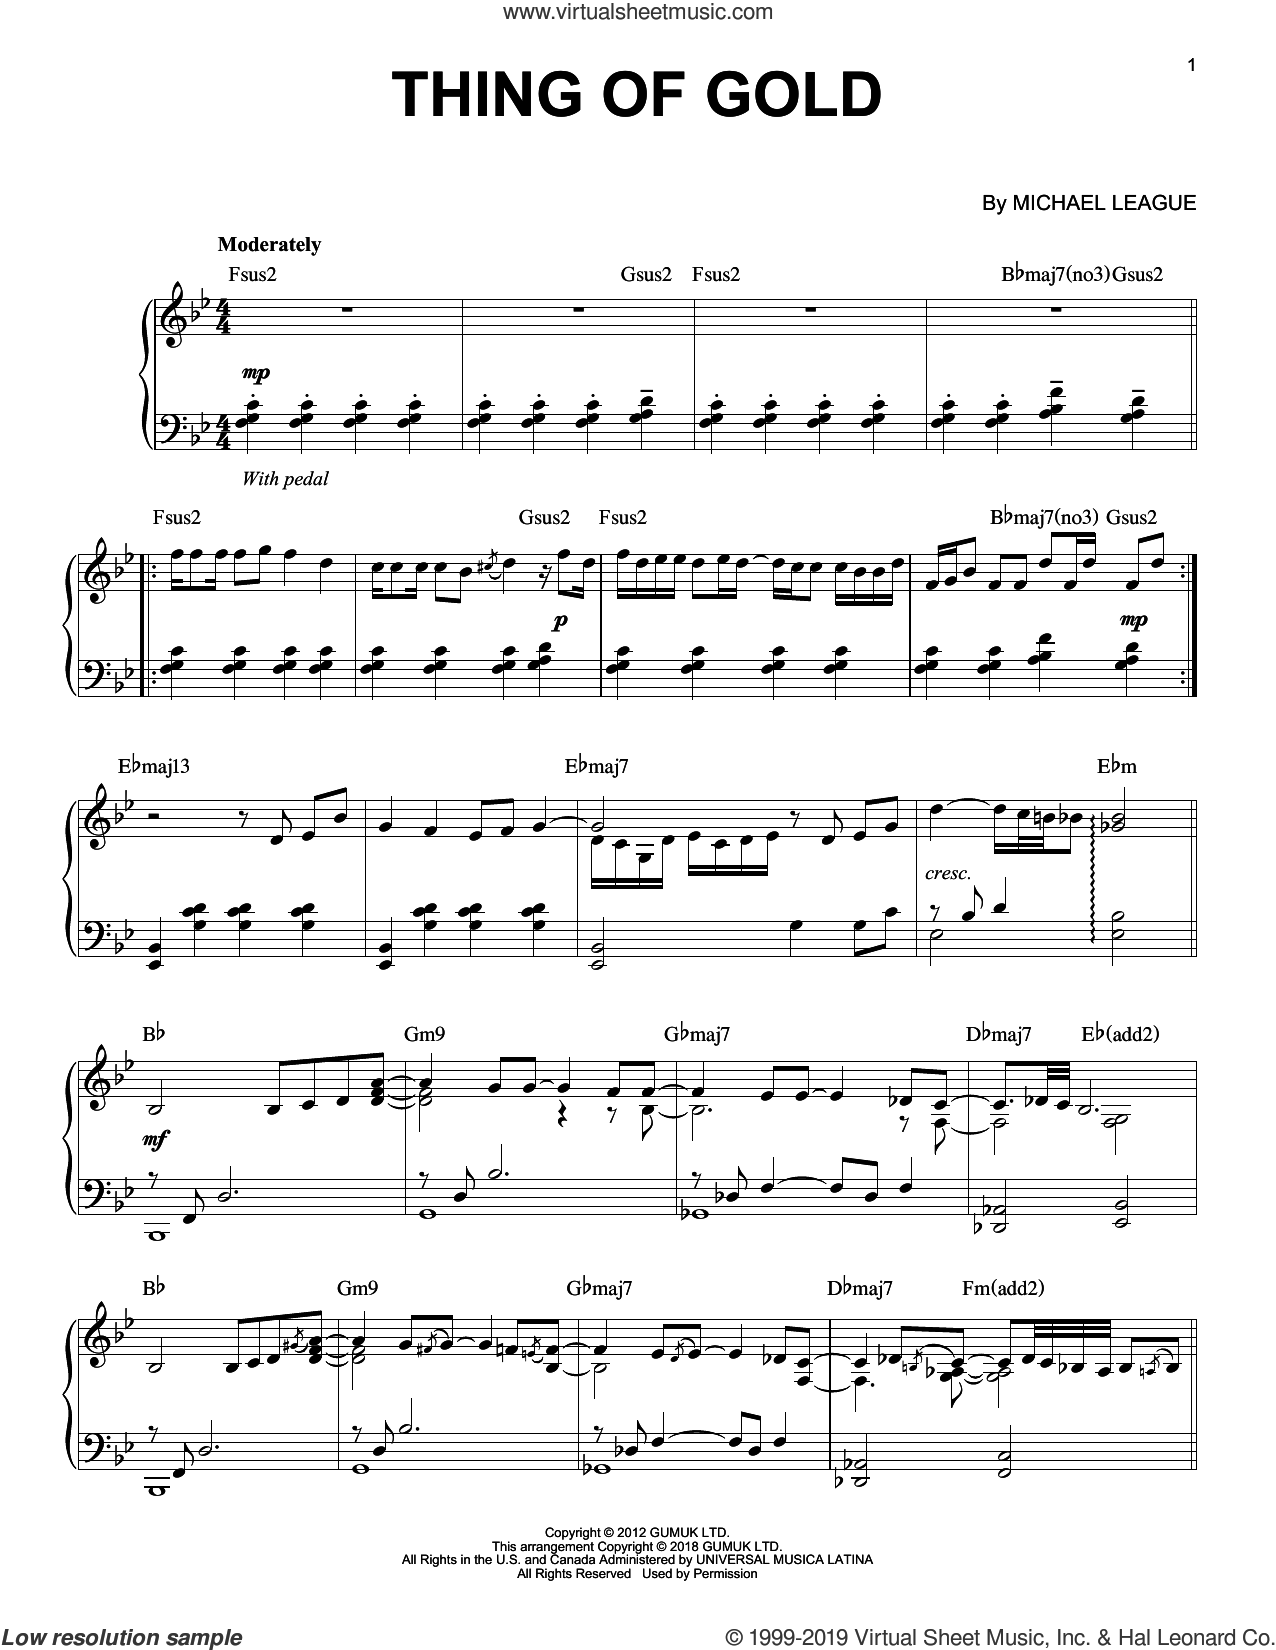 Thing Of Gold sheet music for piano solo by Snarky Puppy and Michael League, intermediate skill level